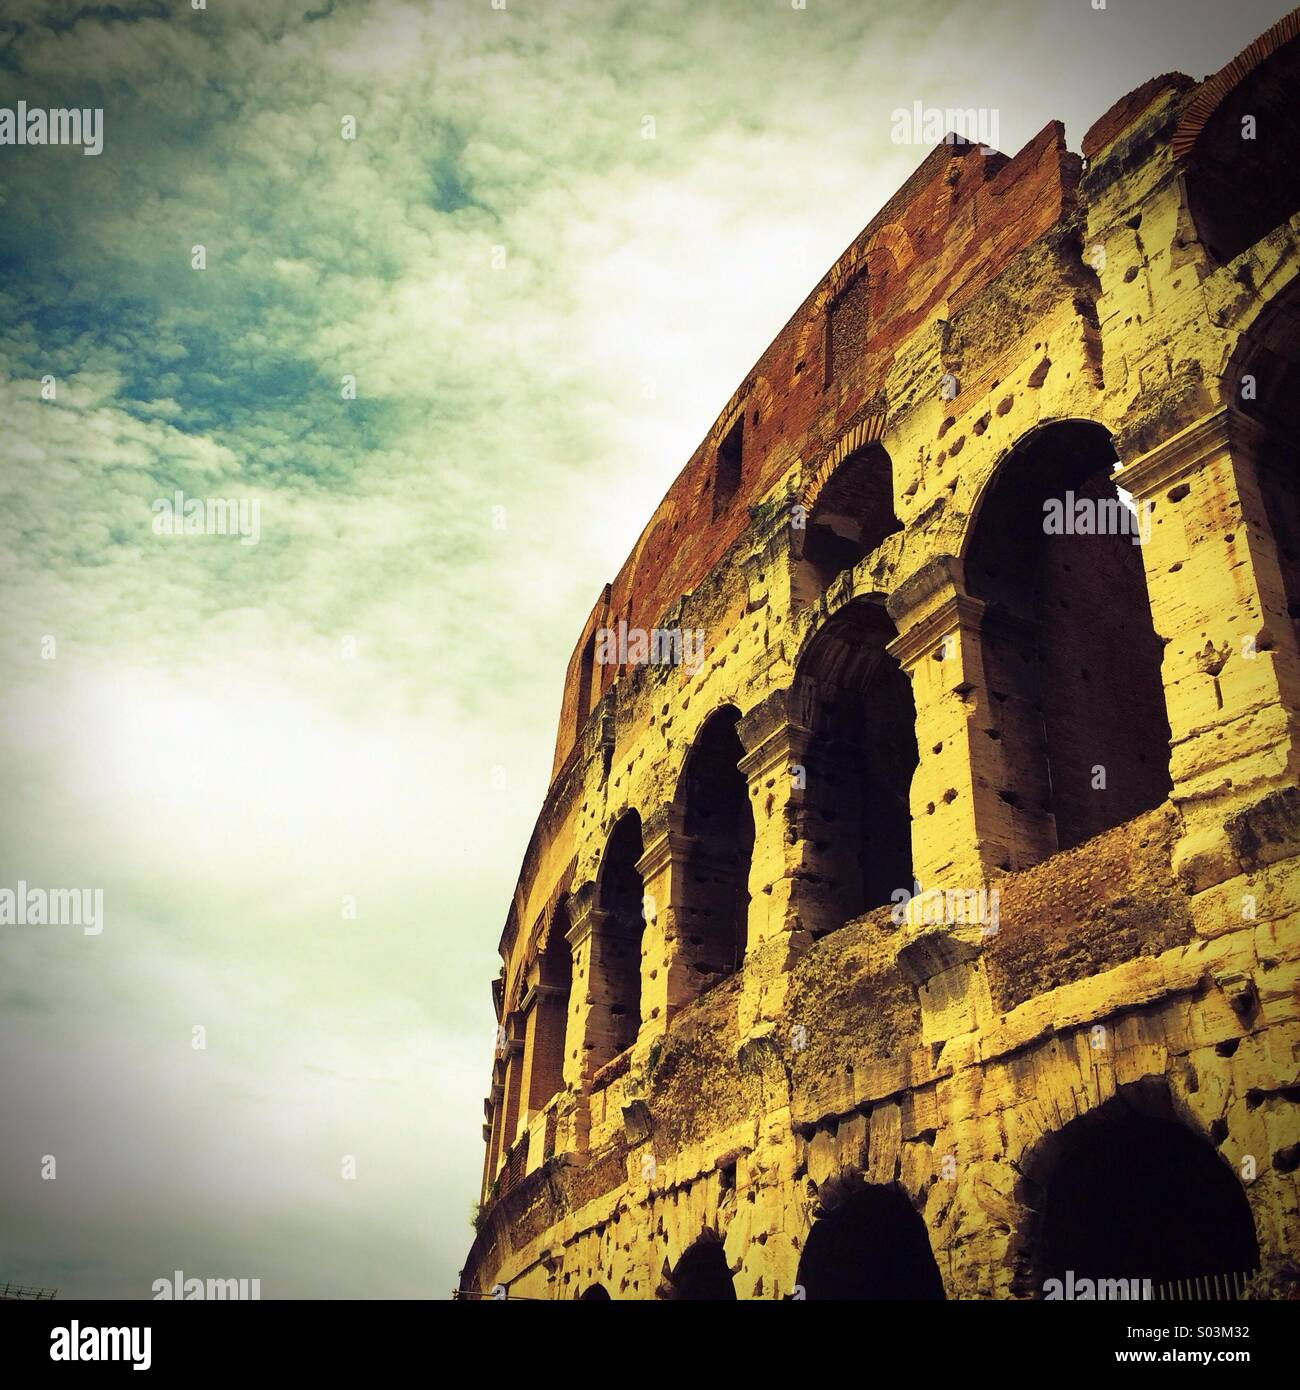 Colosseum, Rome,Italy Europe - Stock Image